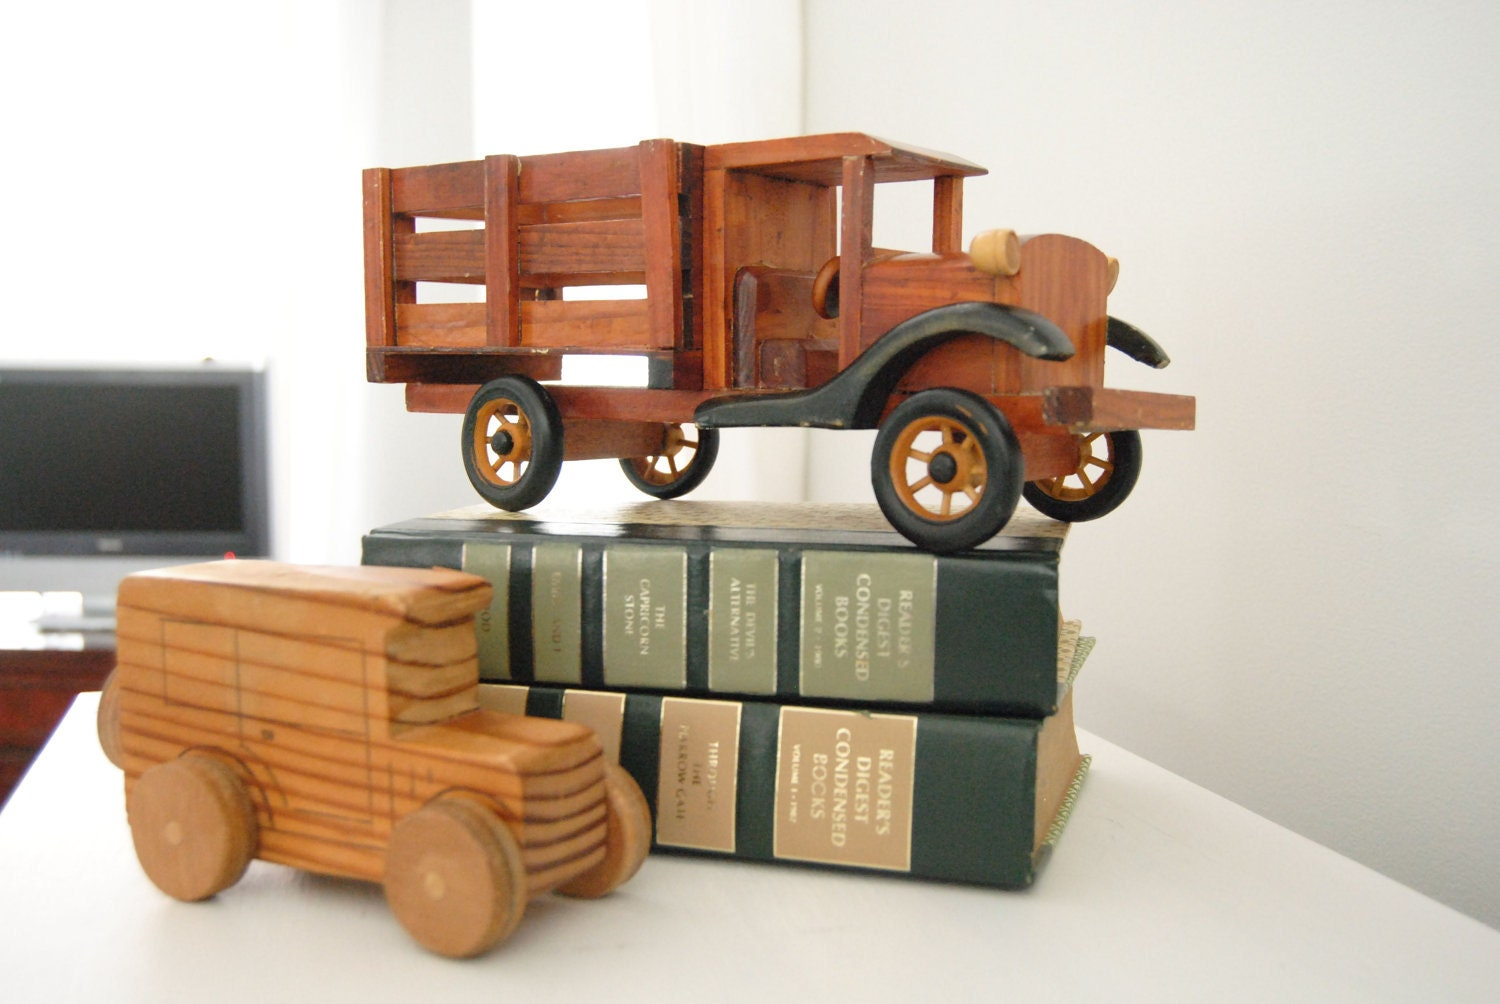 Wooden Toy Trucks For 3 Year Old : Sale vintage wood toy truck nice details free shipping